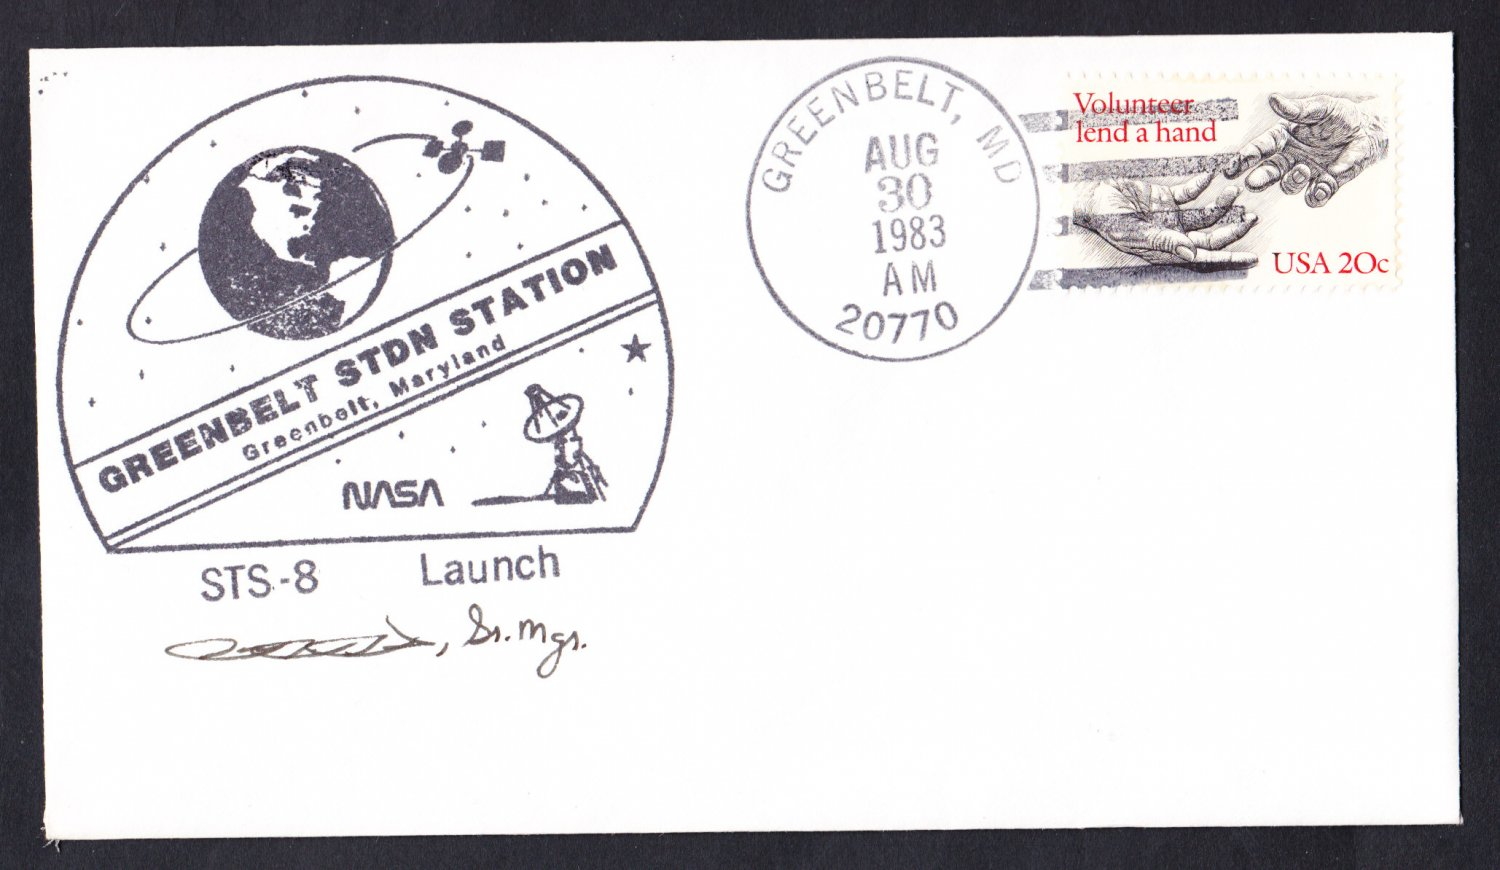 SPACE SHUTTLE COLUMBIA SPACELAB STS-9 Launch 1983 Space Cover